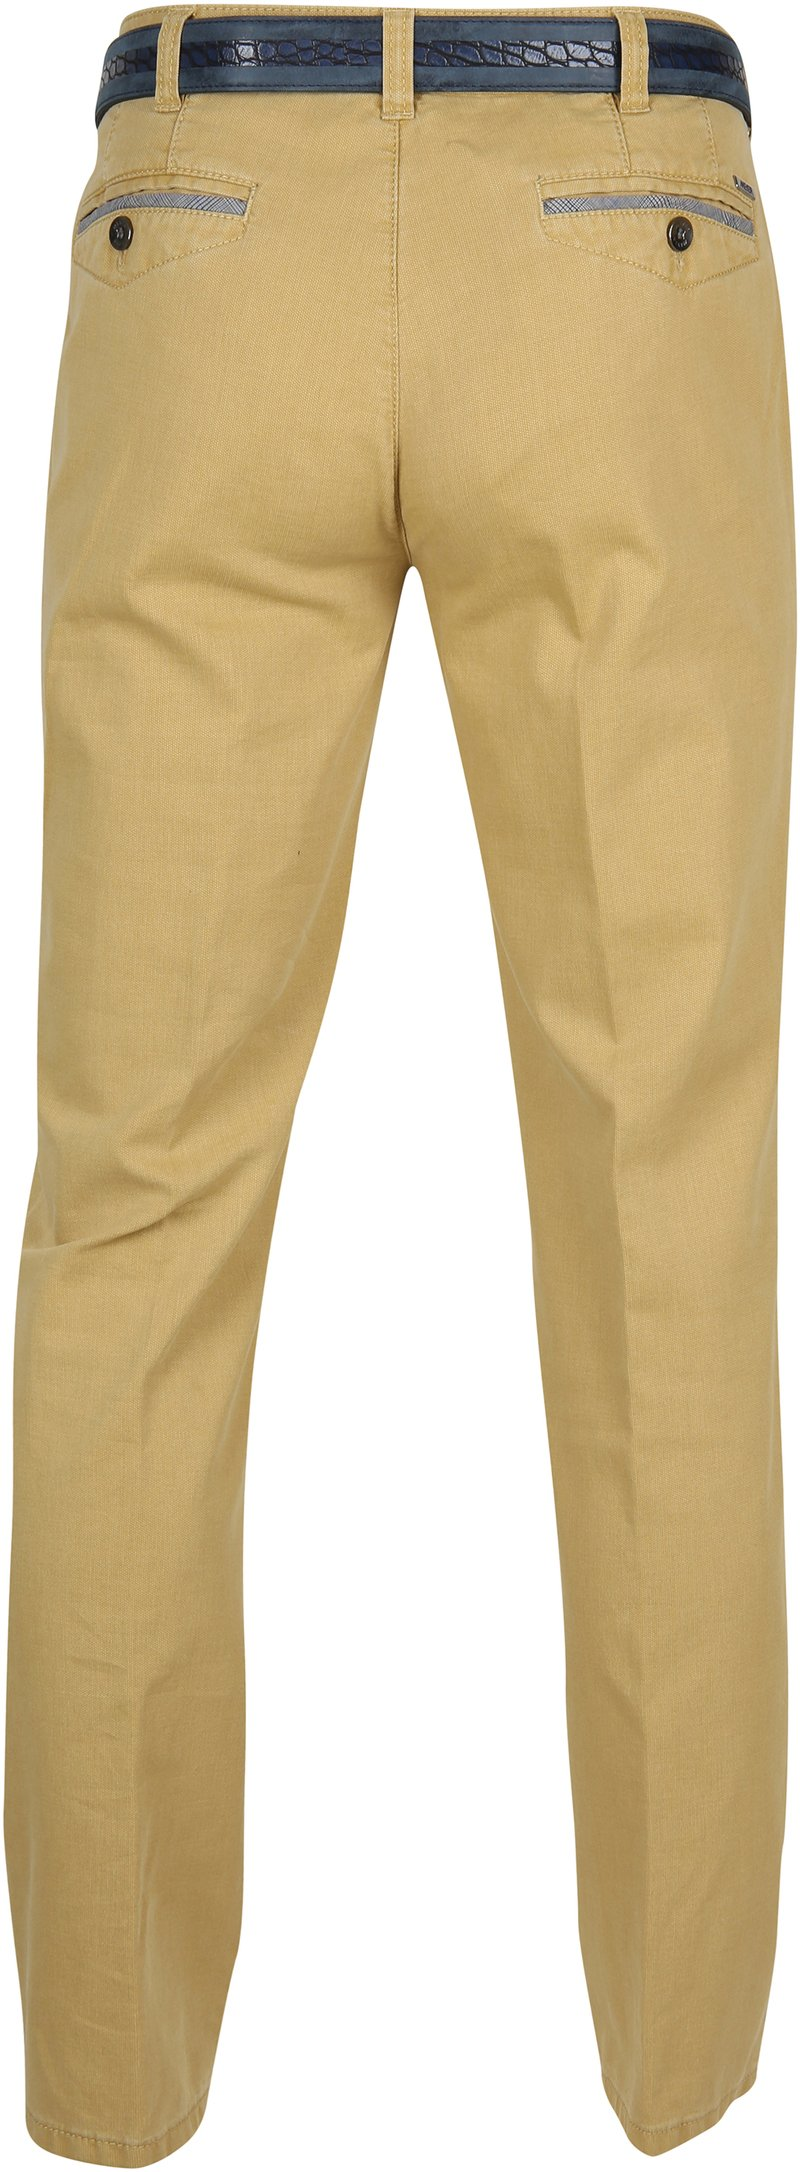 Meyer Chicago Yellow Chino